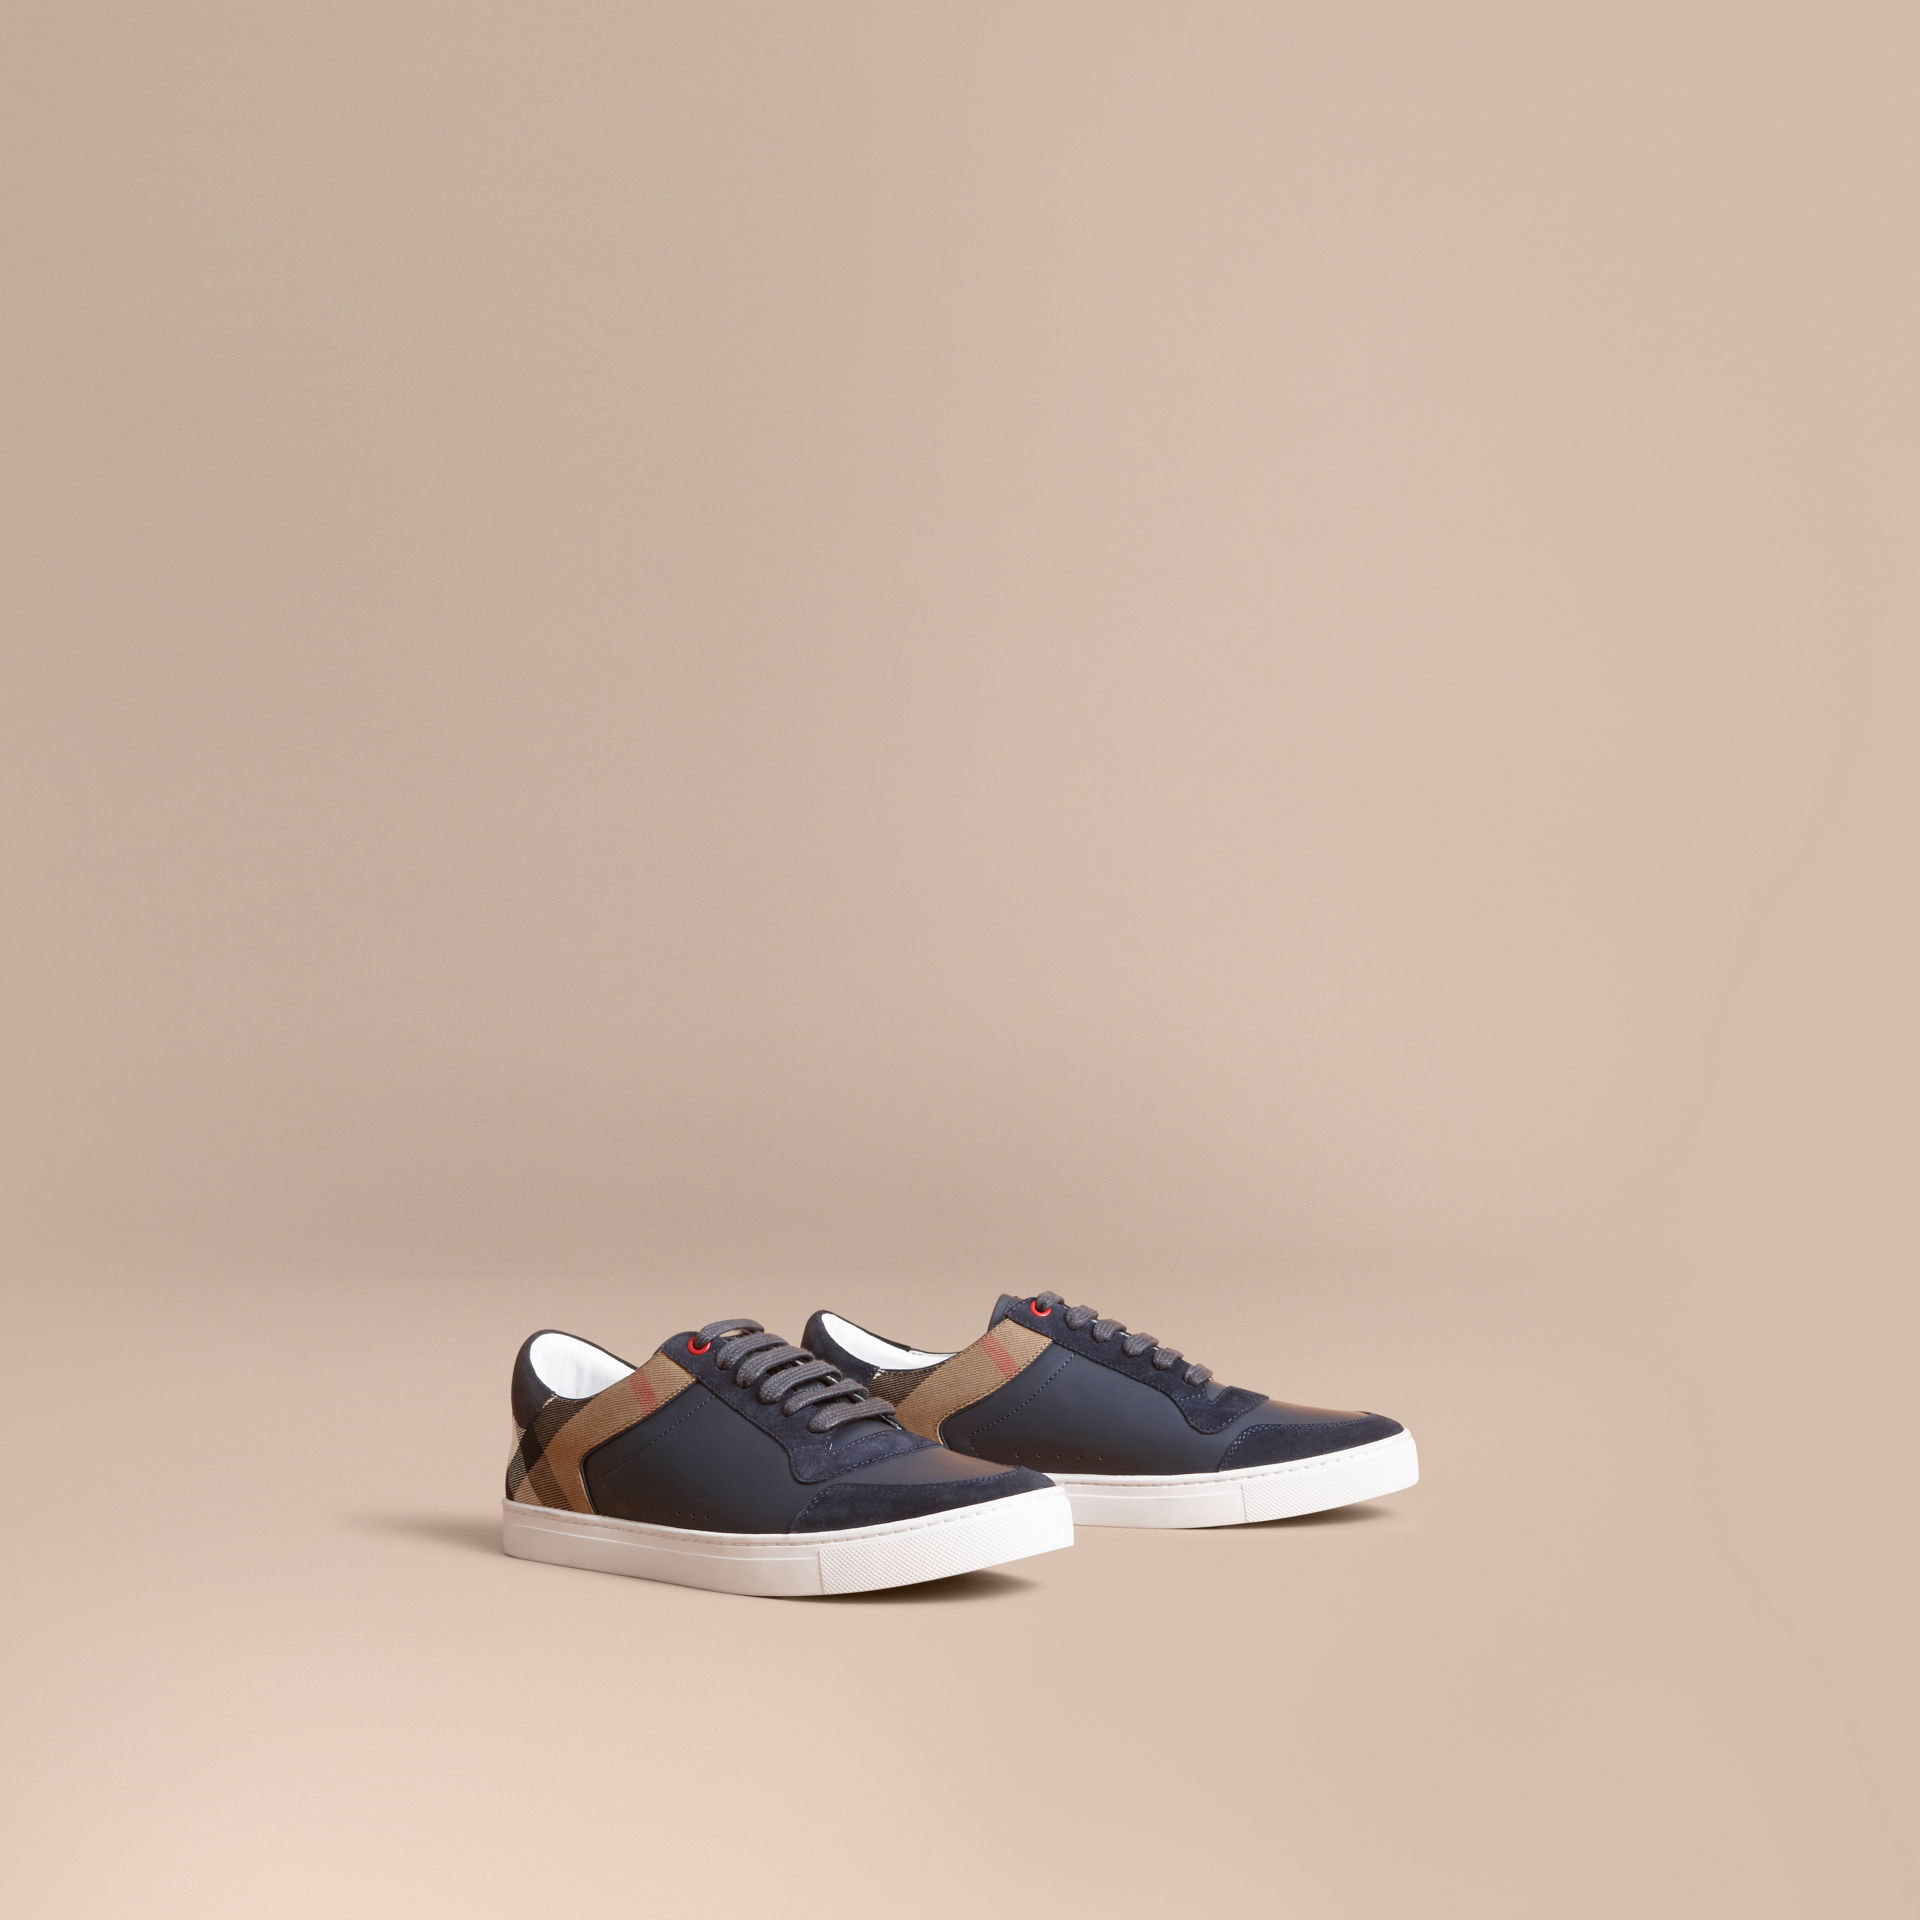 Burberry Navy Leather and House Check Trainers